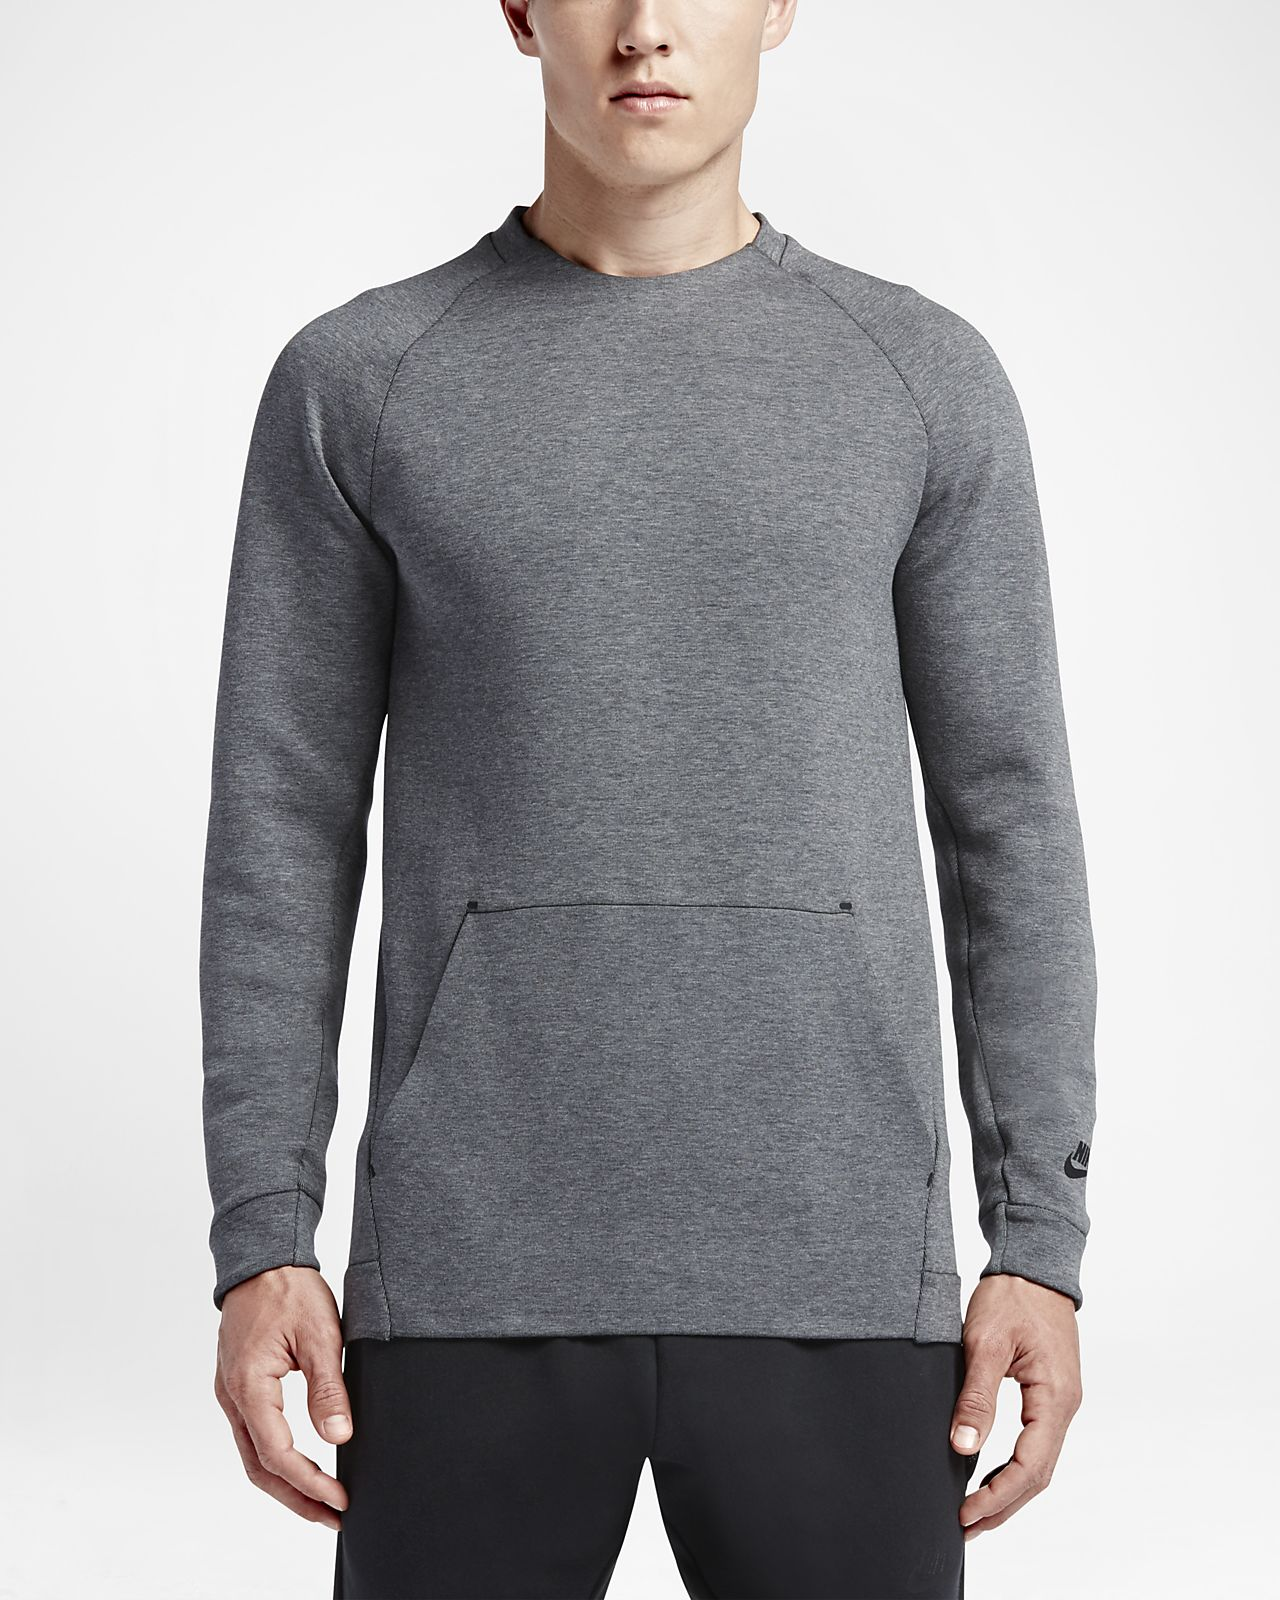 Nike Sportswear Tech Fleece Crew Men's Sweatshirt